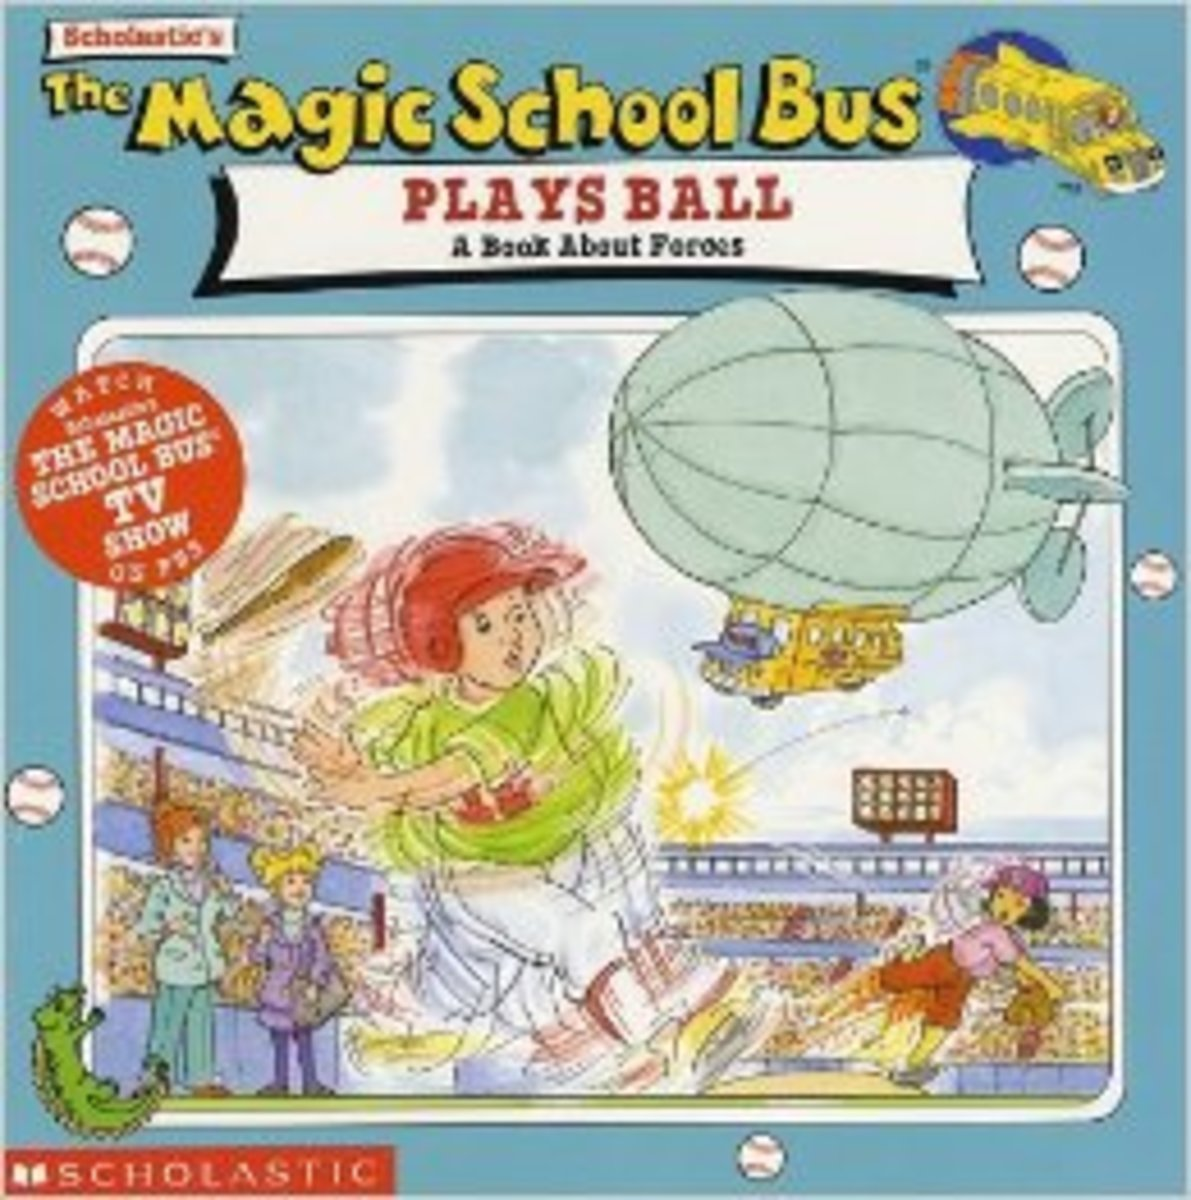 The Magic School Bus Plays Ball: A Book About Forces by Joanna Cole - All images are from amazon.com.